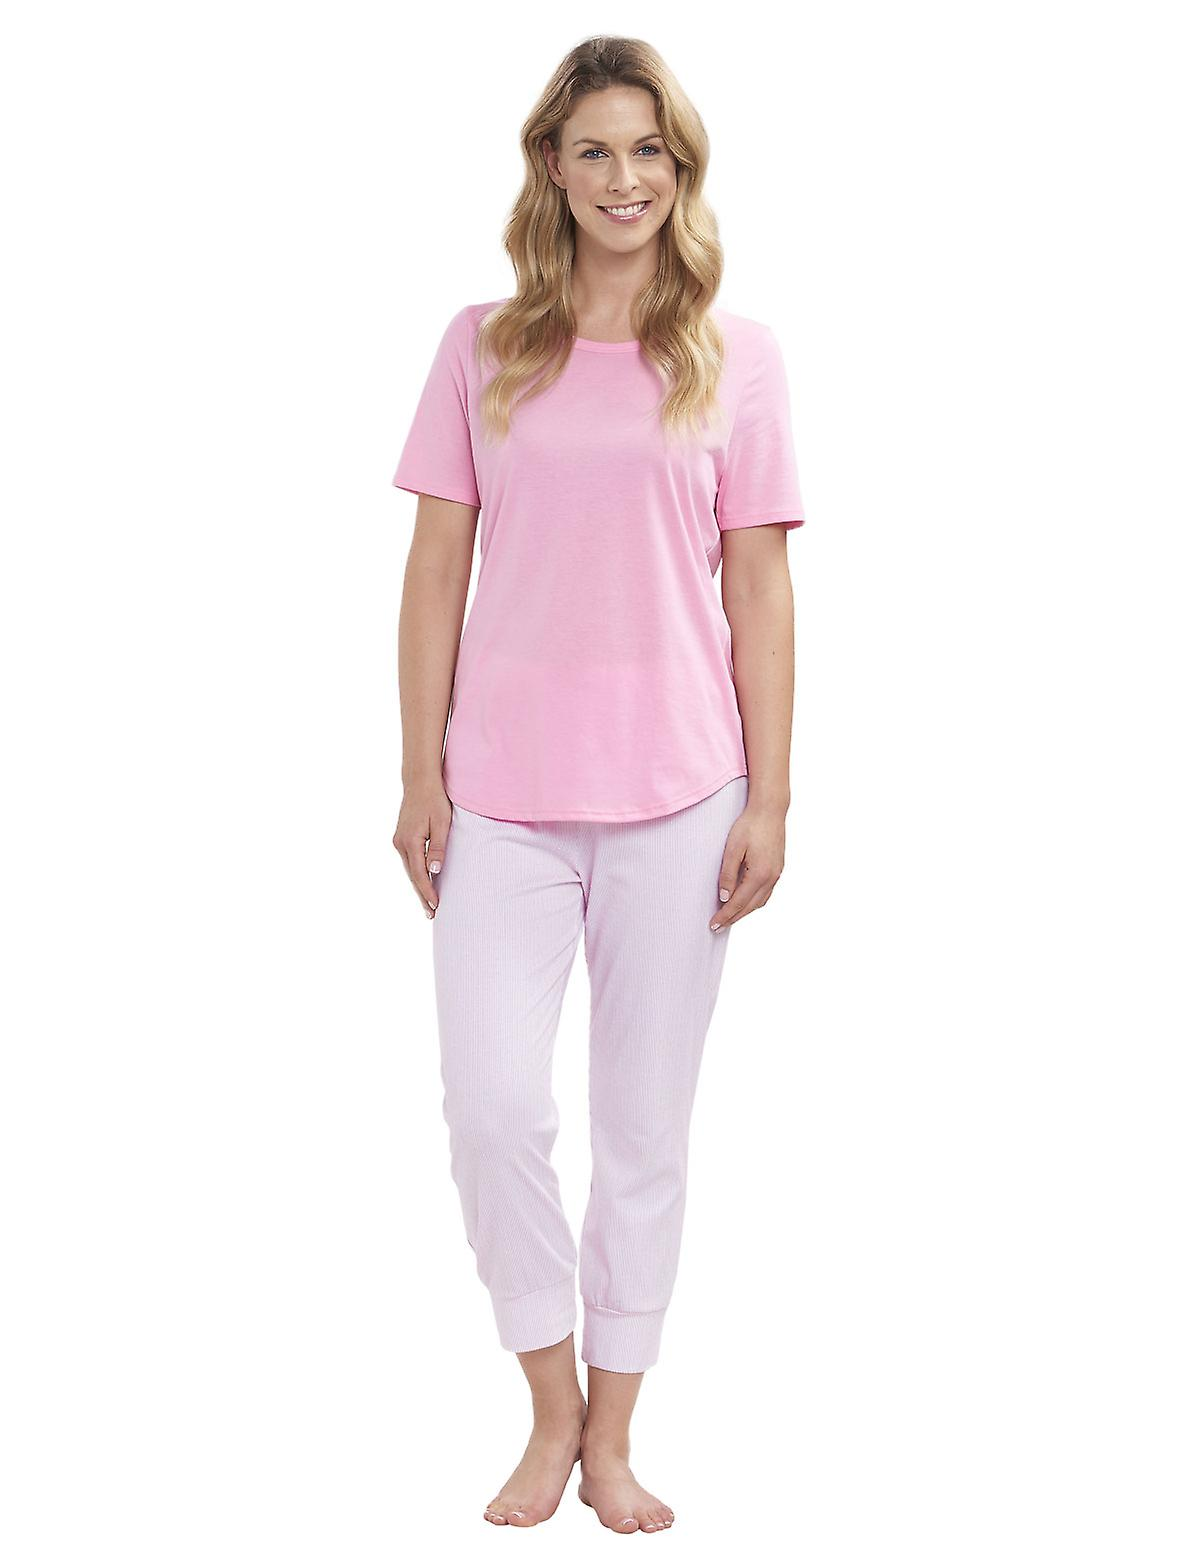 Rosch 1884155 Women's Smart Casual Cotton Pyjama Top